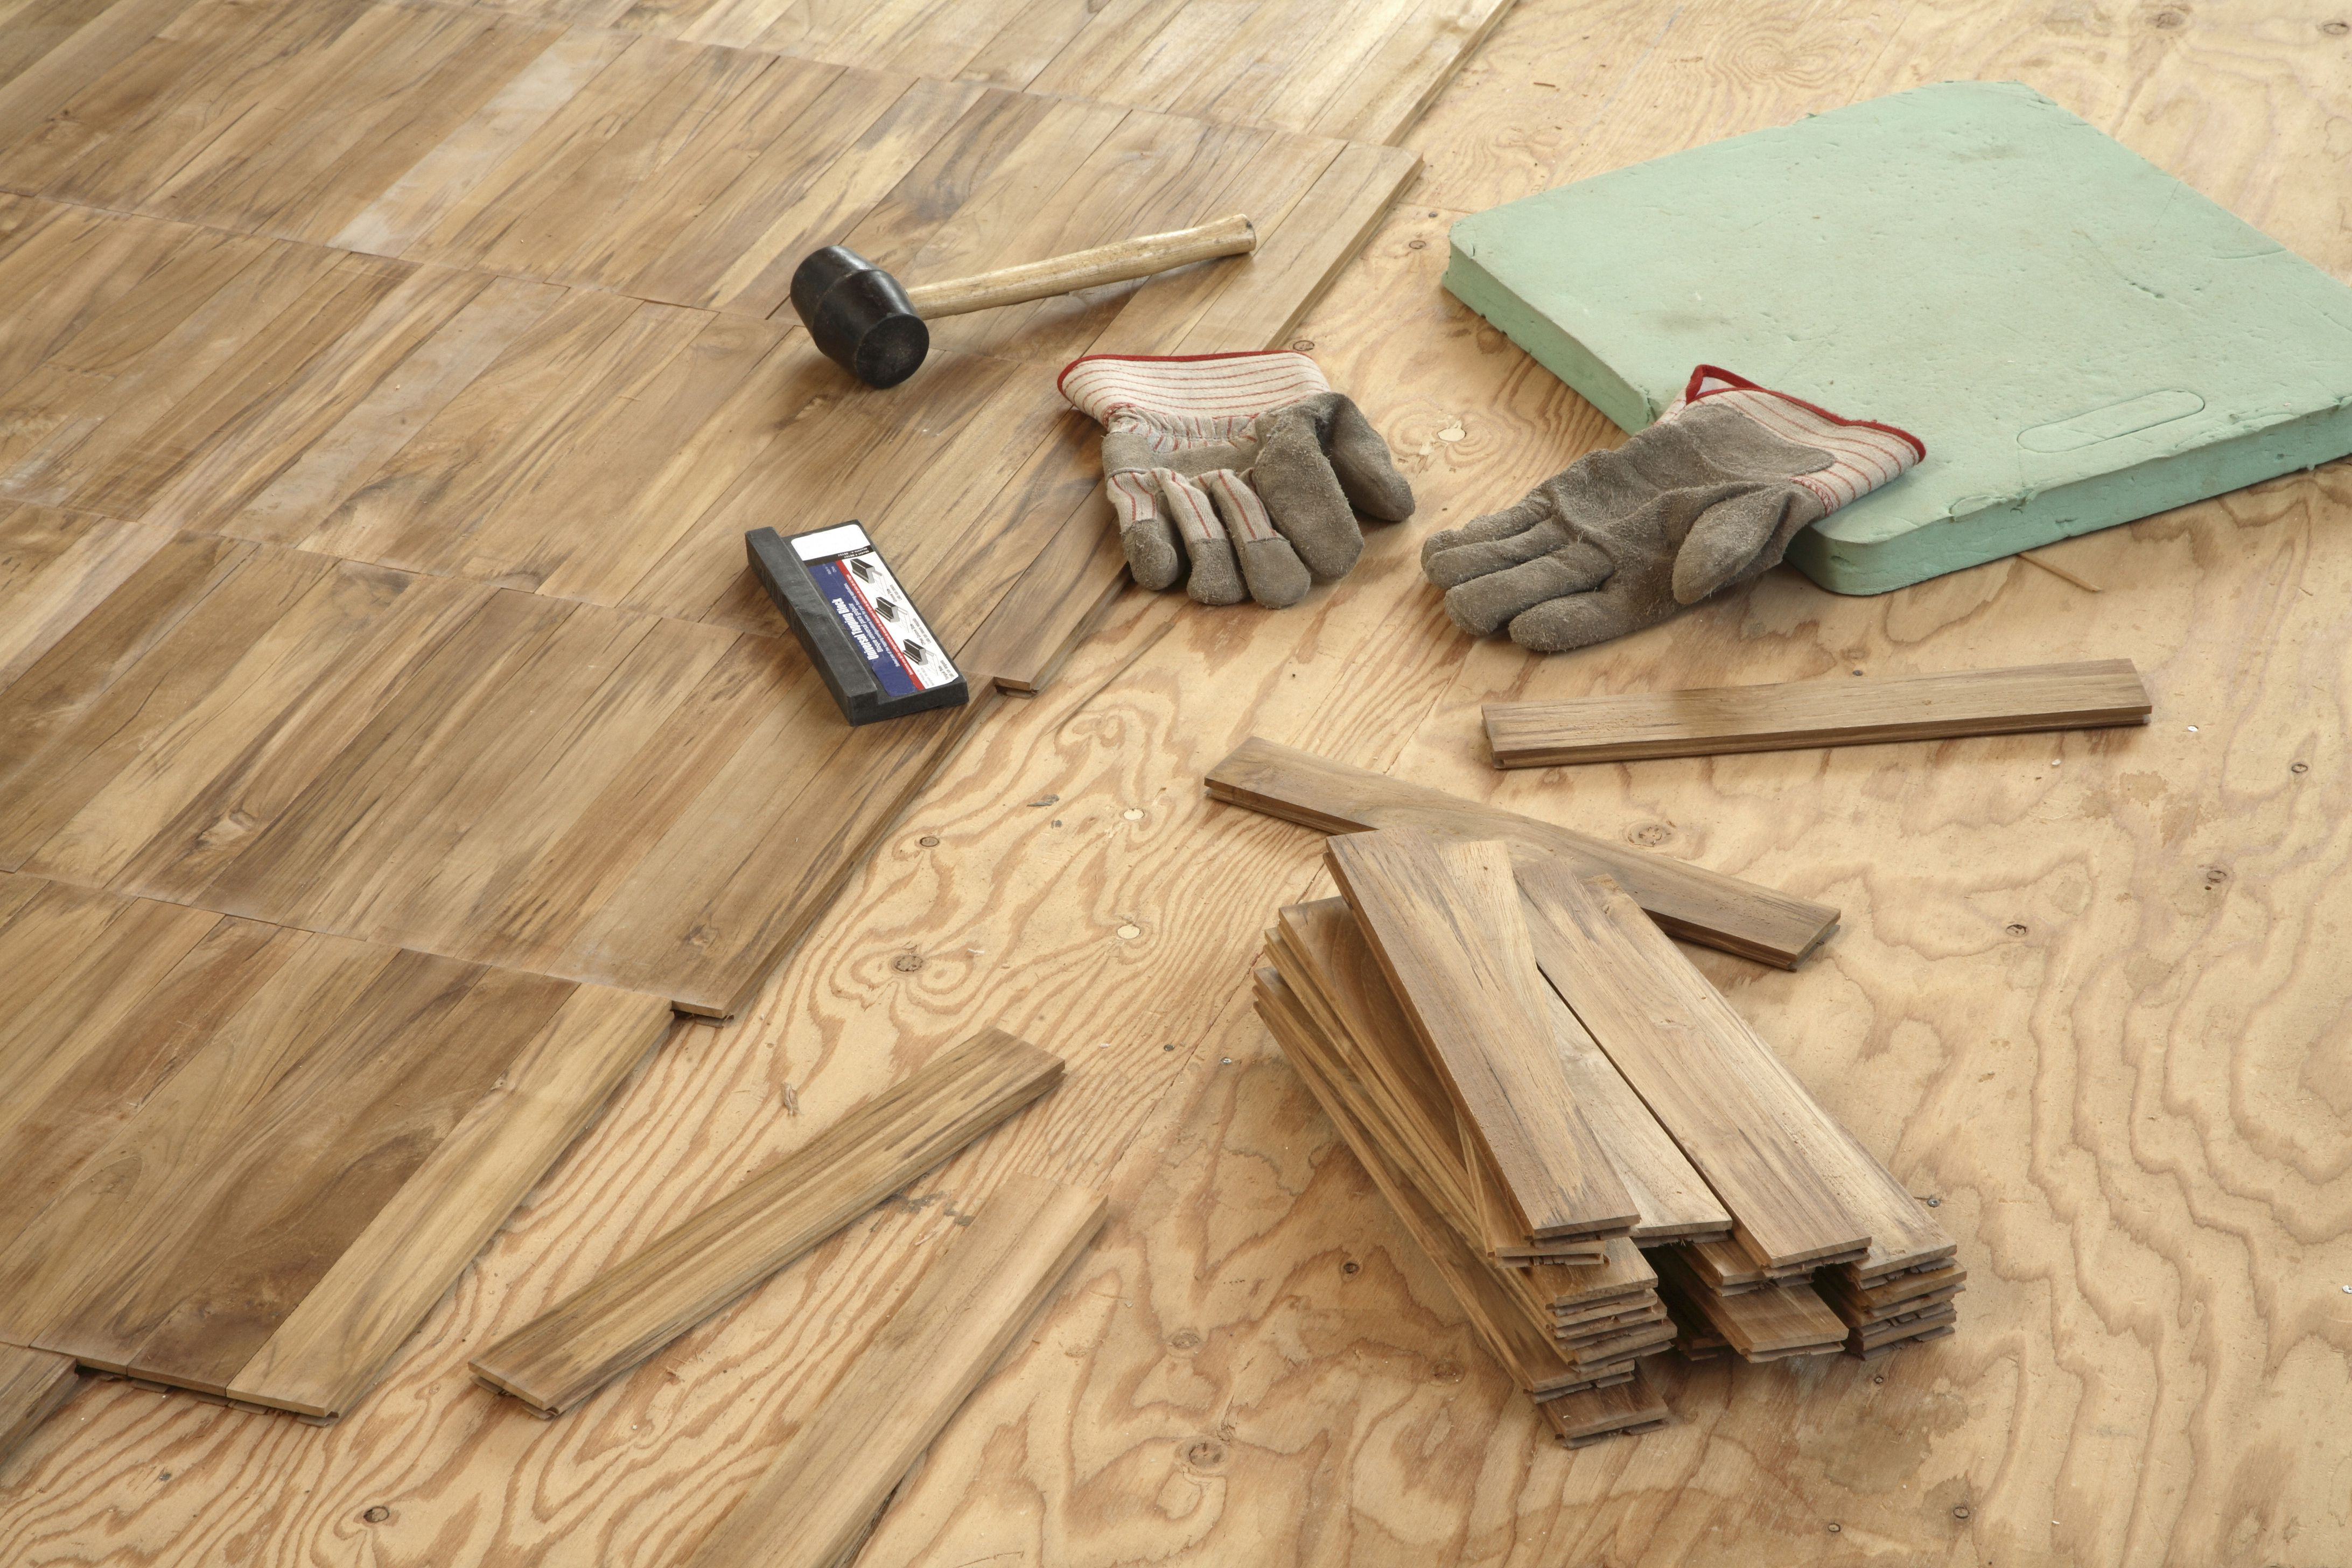 hardwood floor refinishing spokane wa of plywood underlayment pros and cons types and brands pertaining to plywoodunderlaymentunderwoodflooring 5ac24fbcae9ab8003781af25